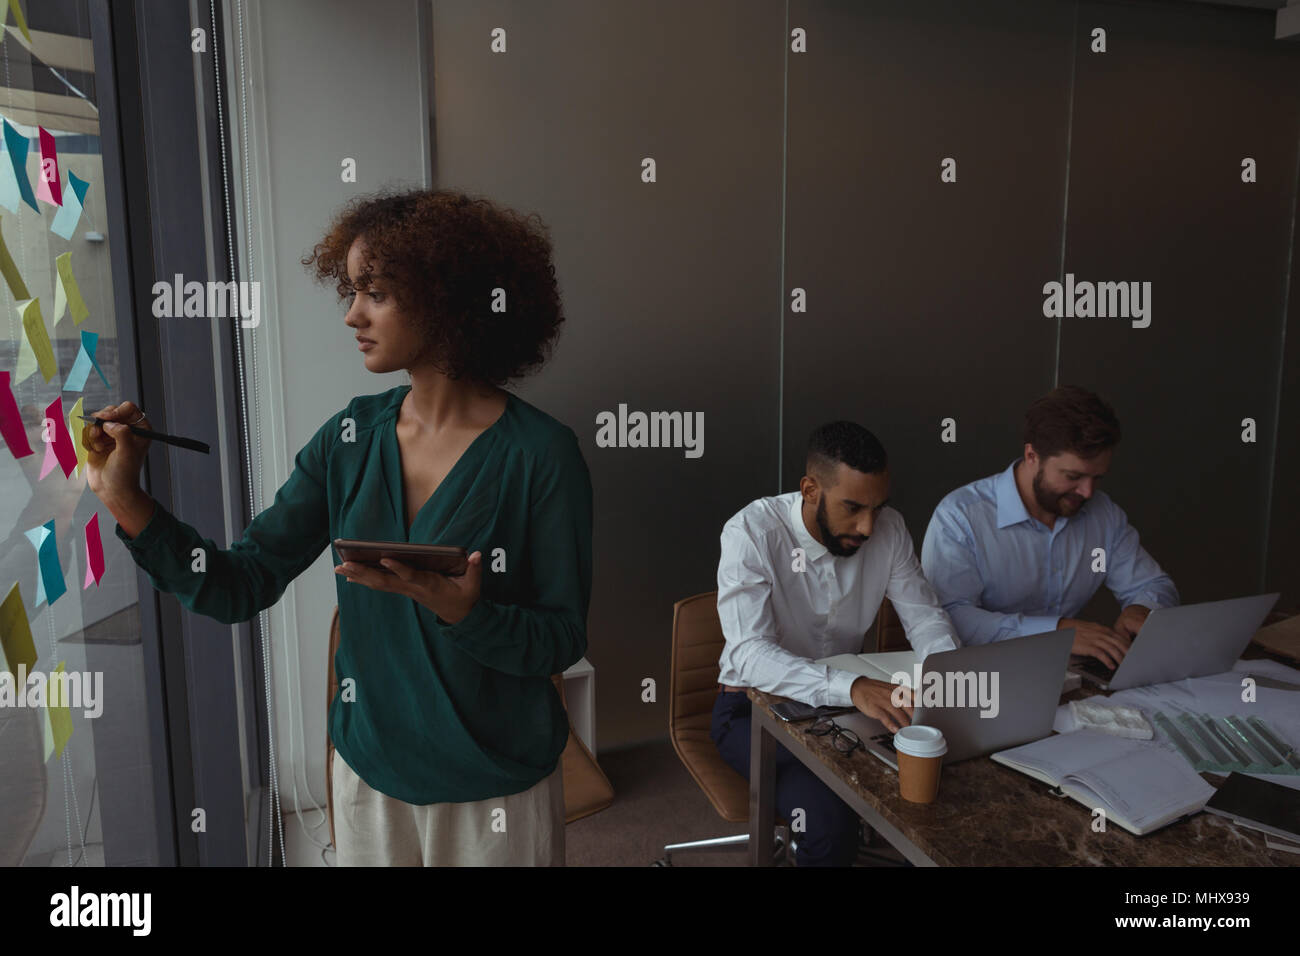 Female Architect with digital tablet writing on sticky note while colleagues using laptop Stock Photo